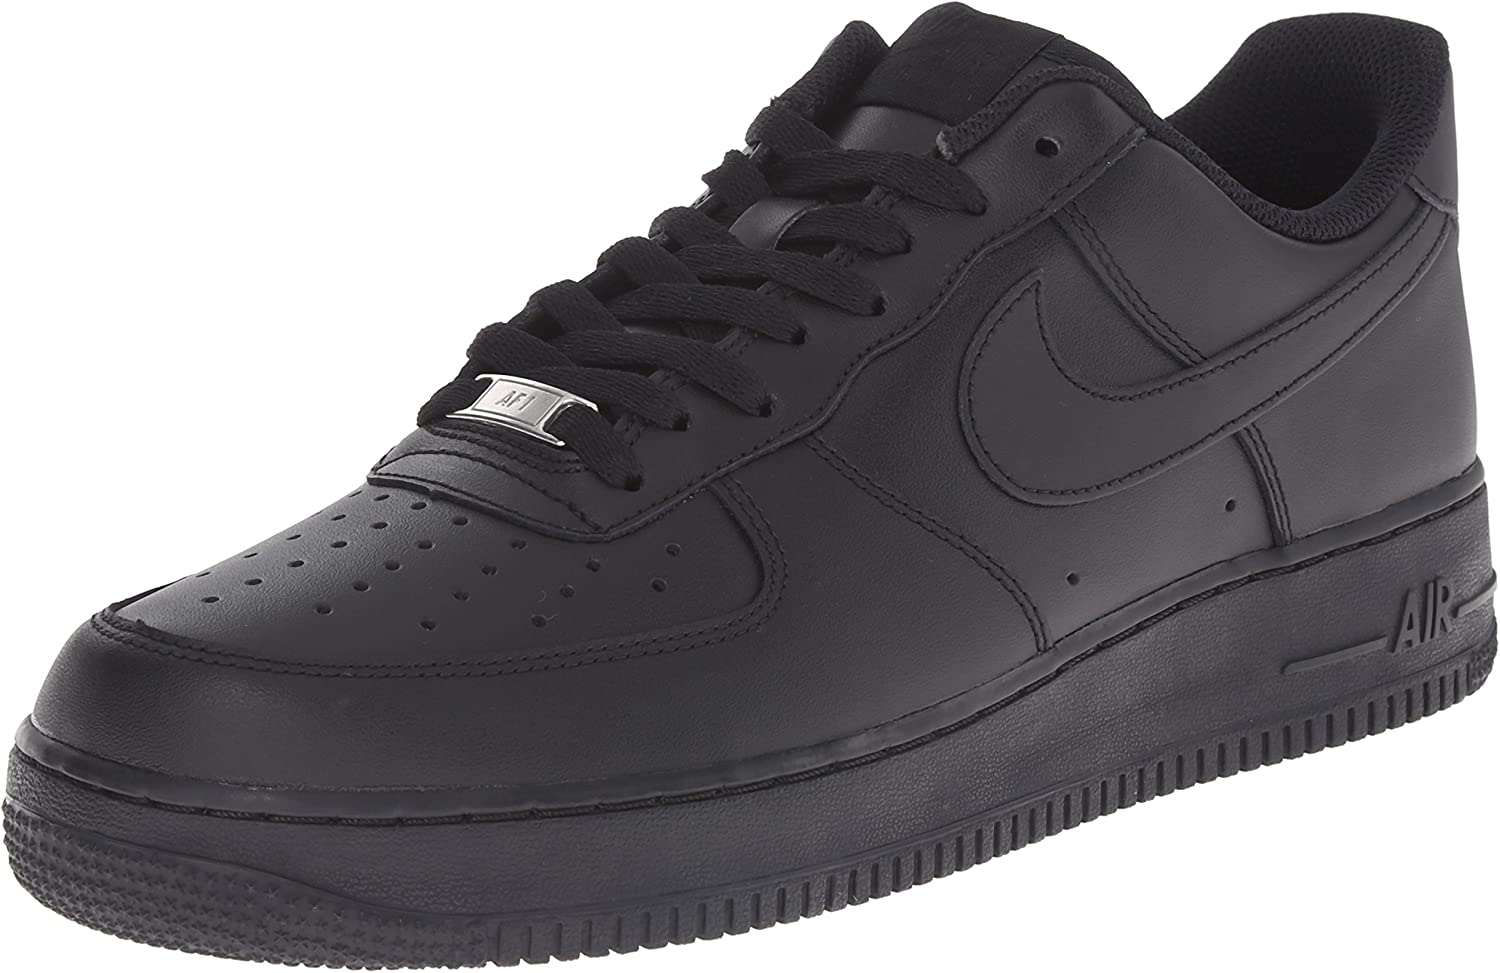 Nike Herren AIR Force 1 '07 Sneakers, Schwarz, Eu